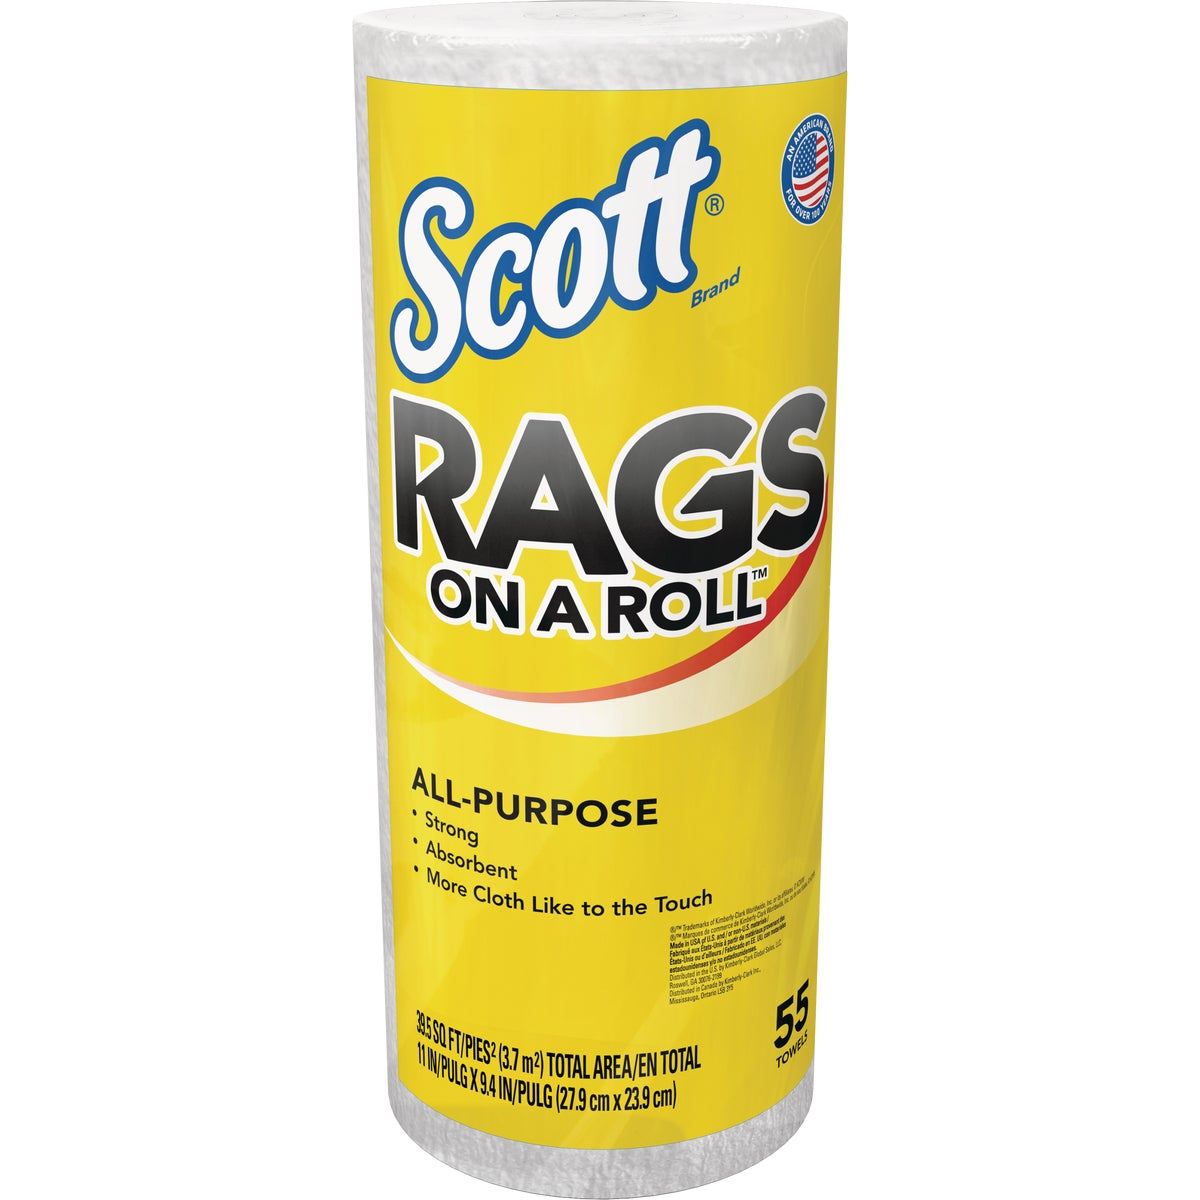 55CT ROLL WHITE RAGS - 75230 by Kimberly Clark Scott